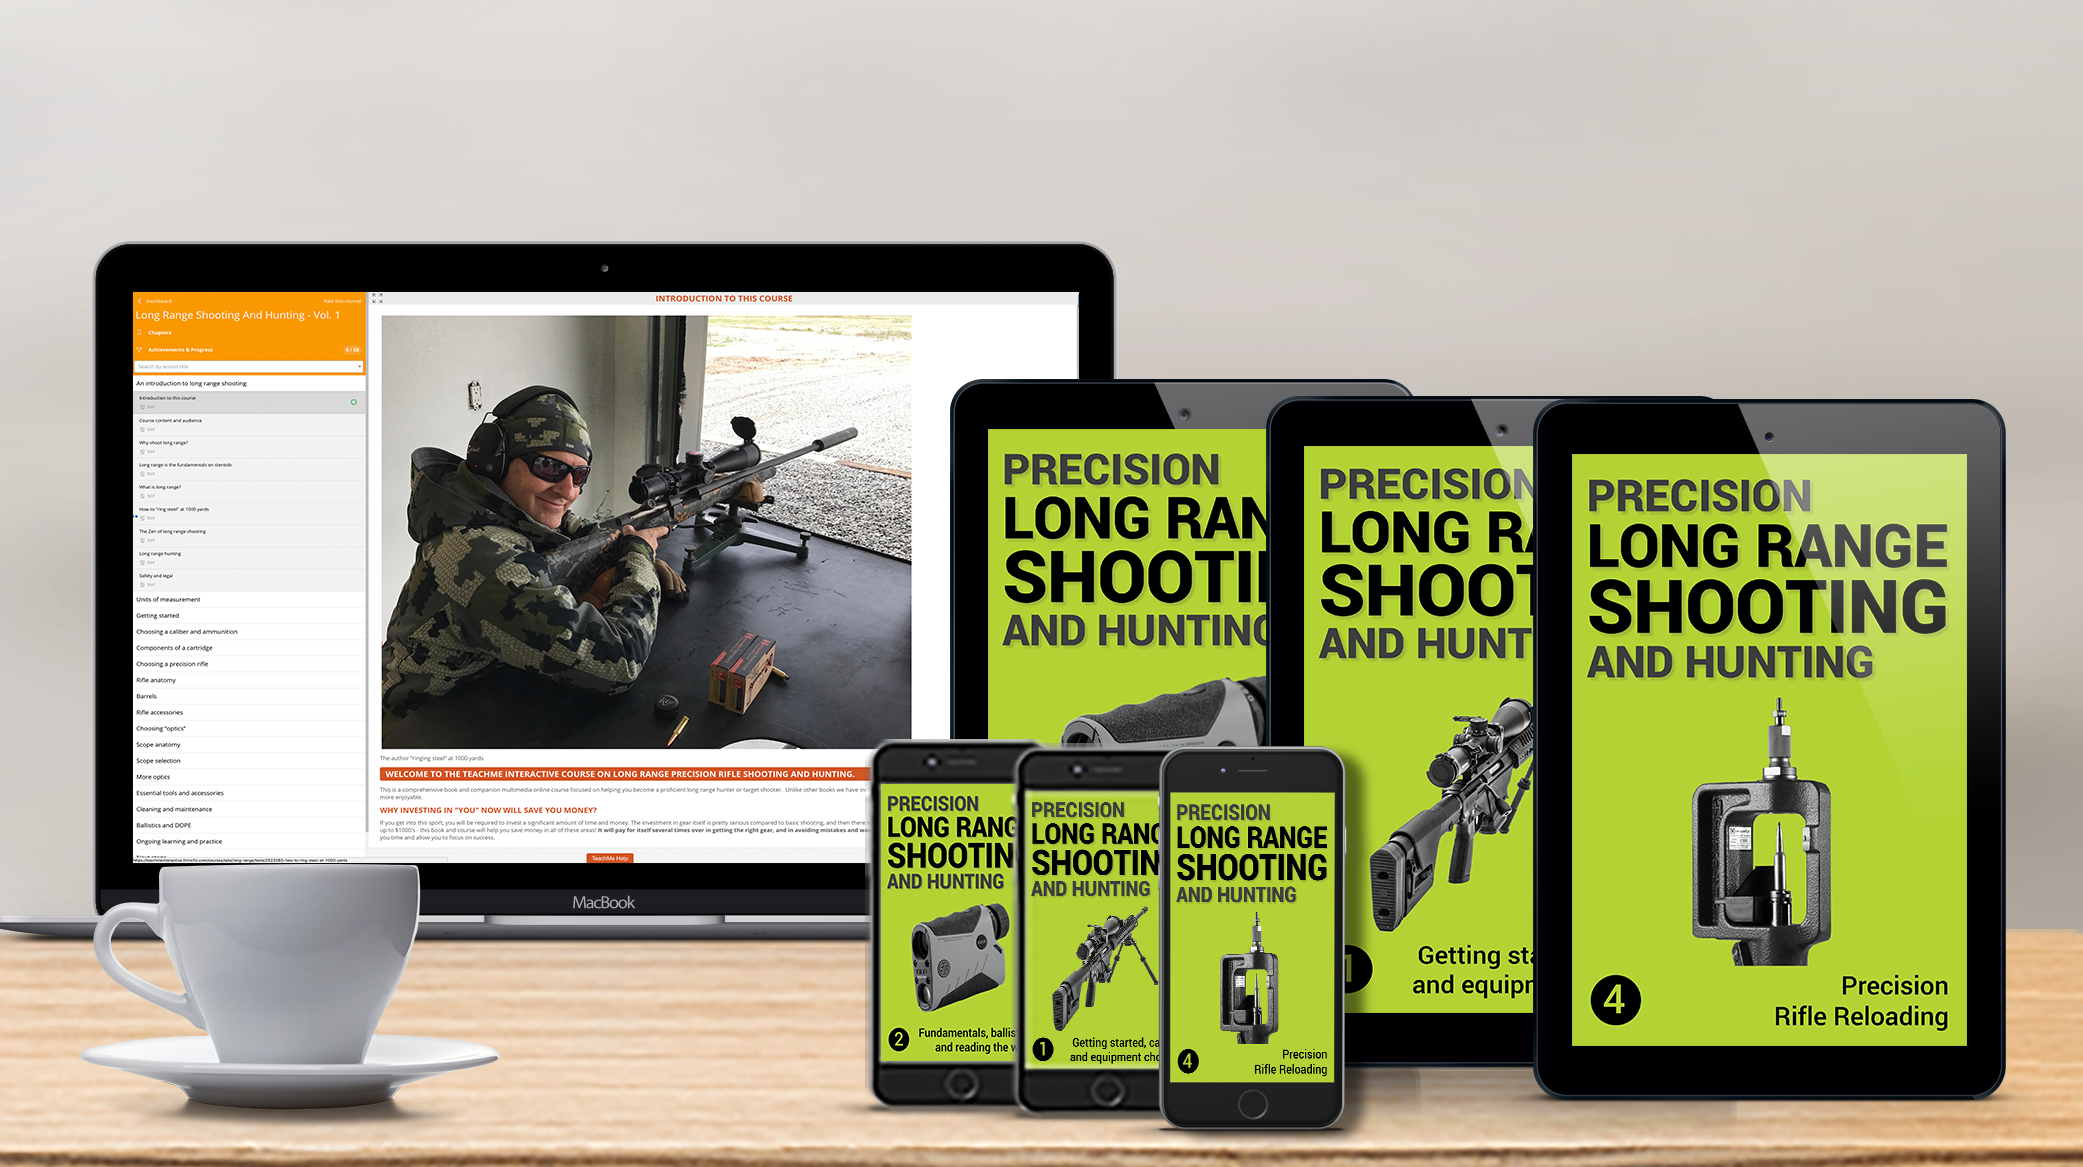 Online Course on Long Range Shooting